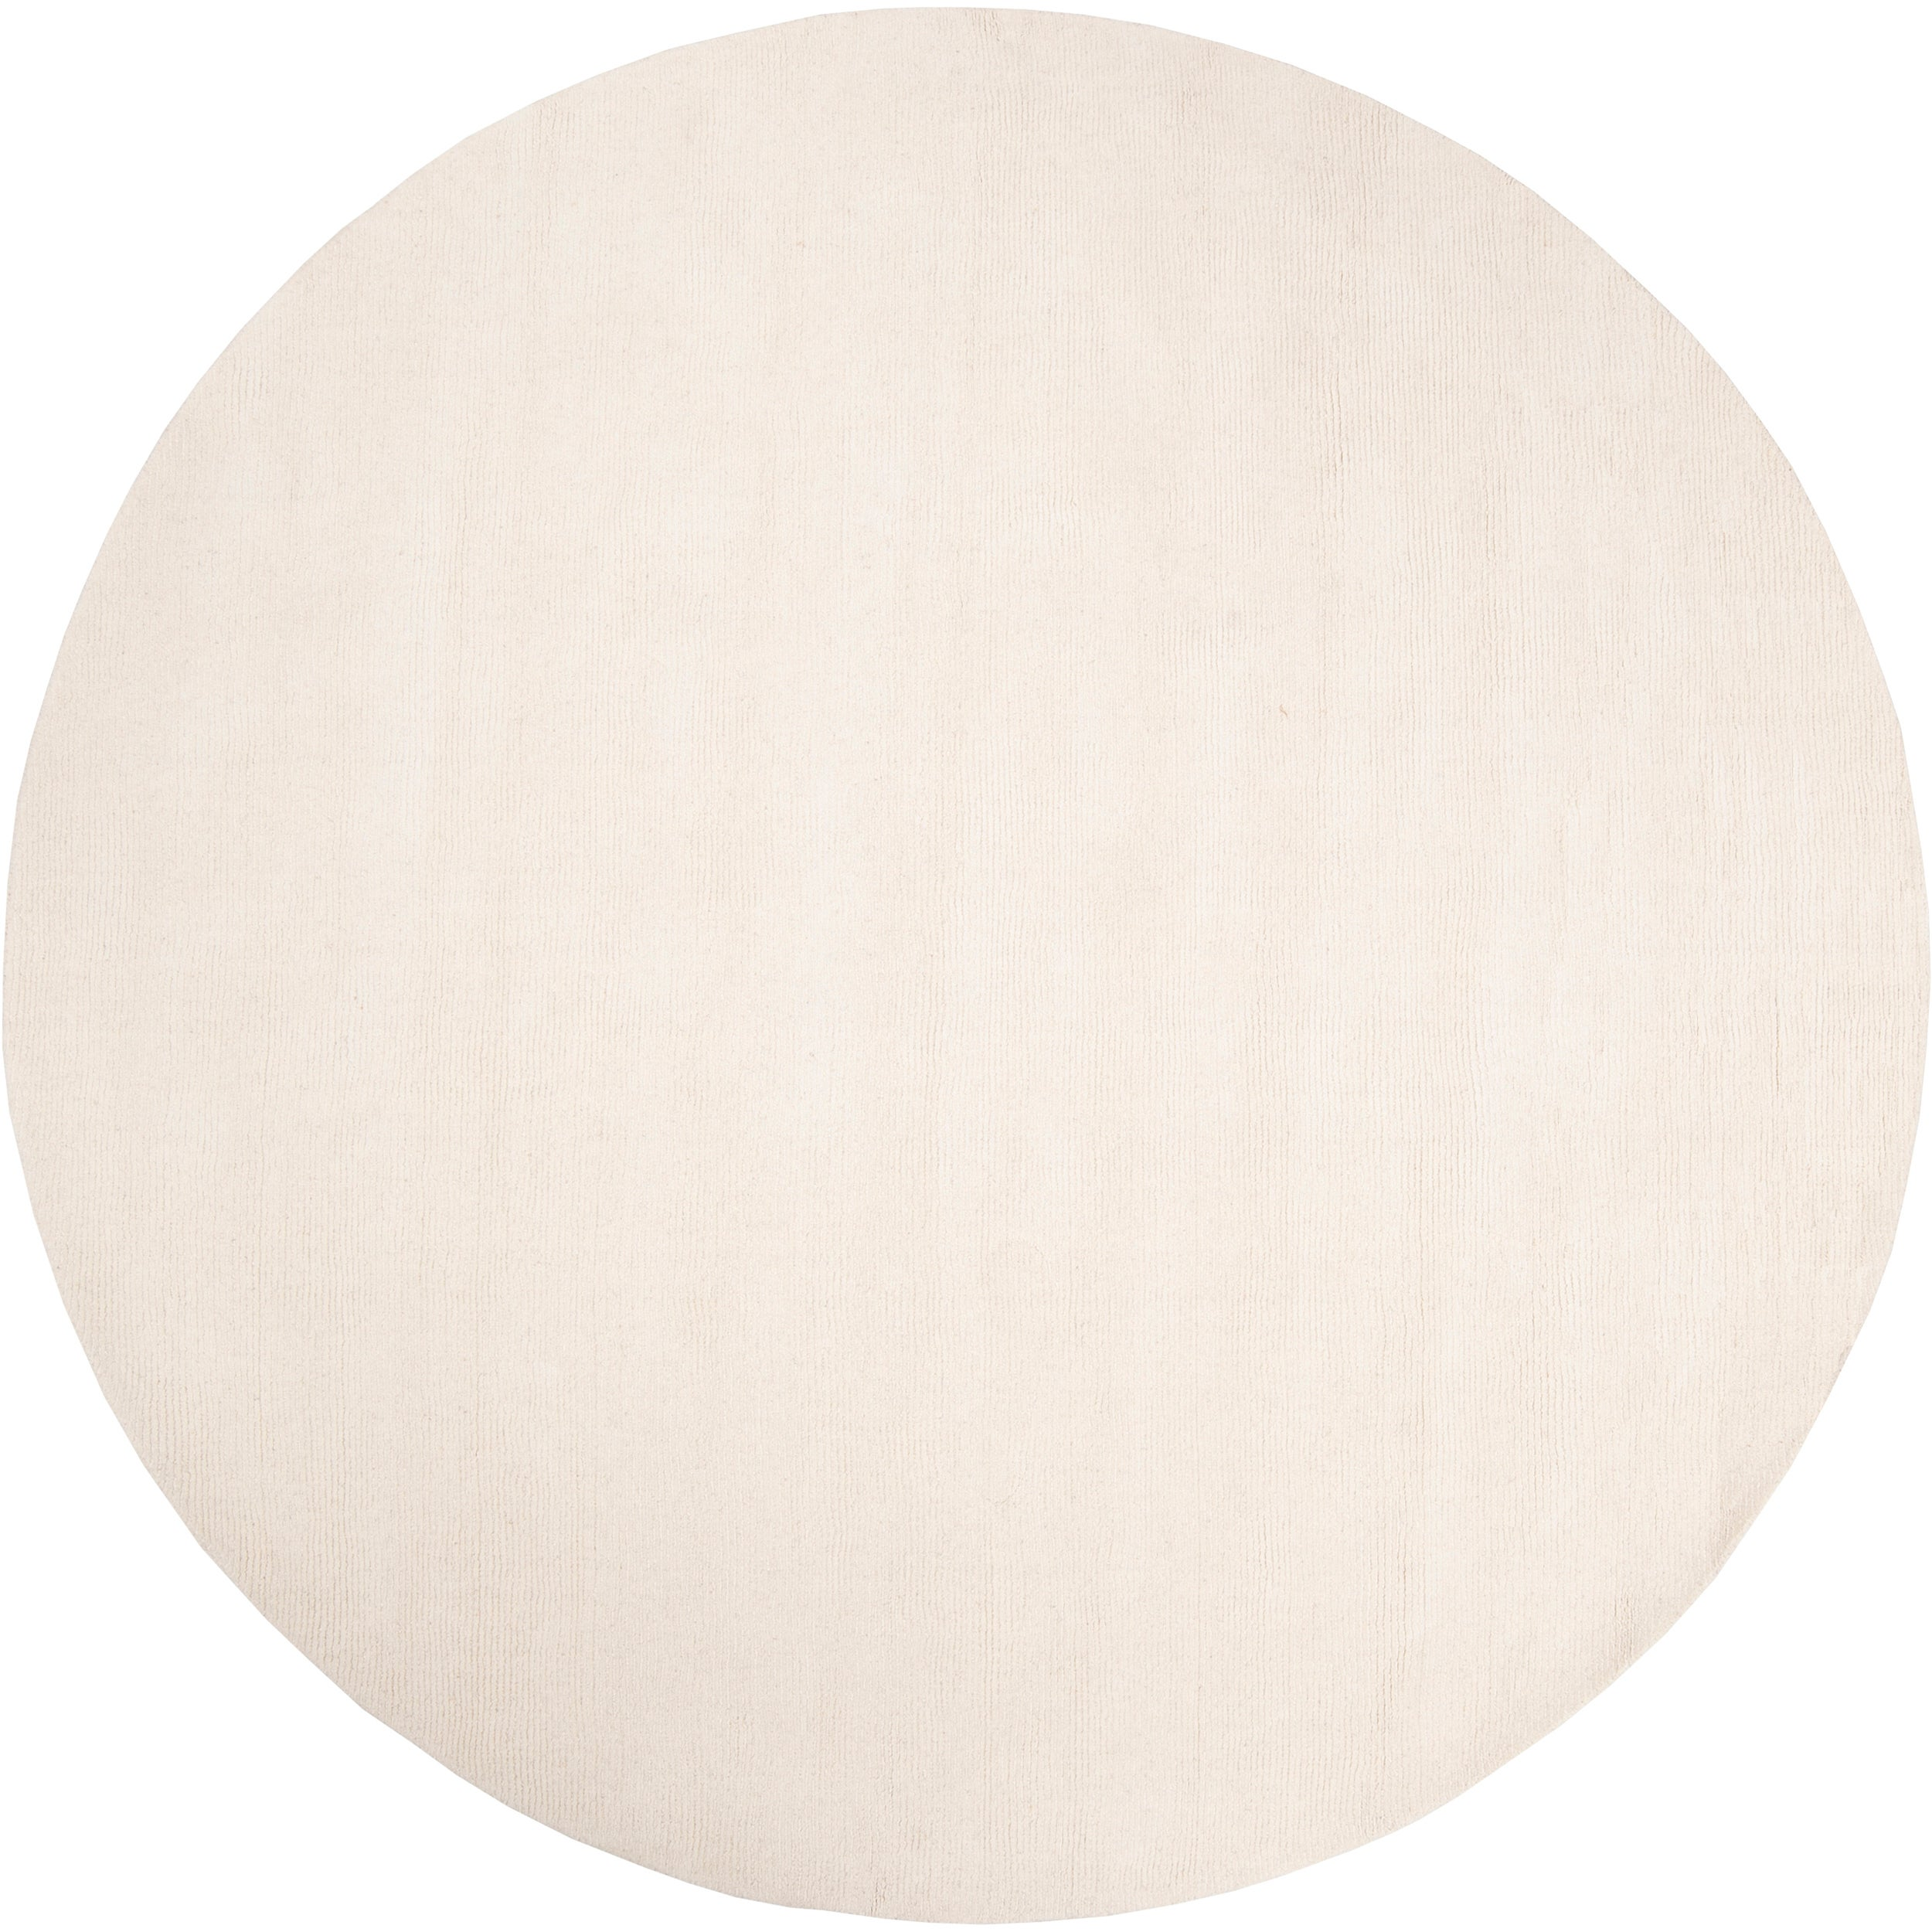 Hand-crafted Solid White Casual Altostratus Wool Rug (8' Round)